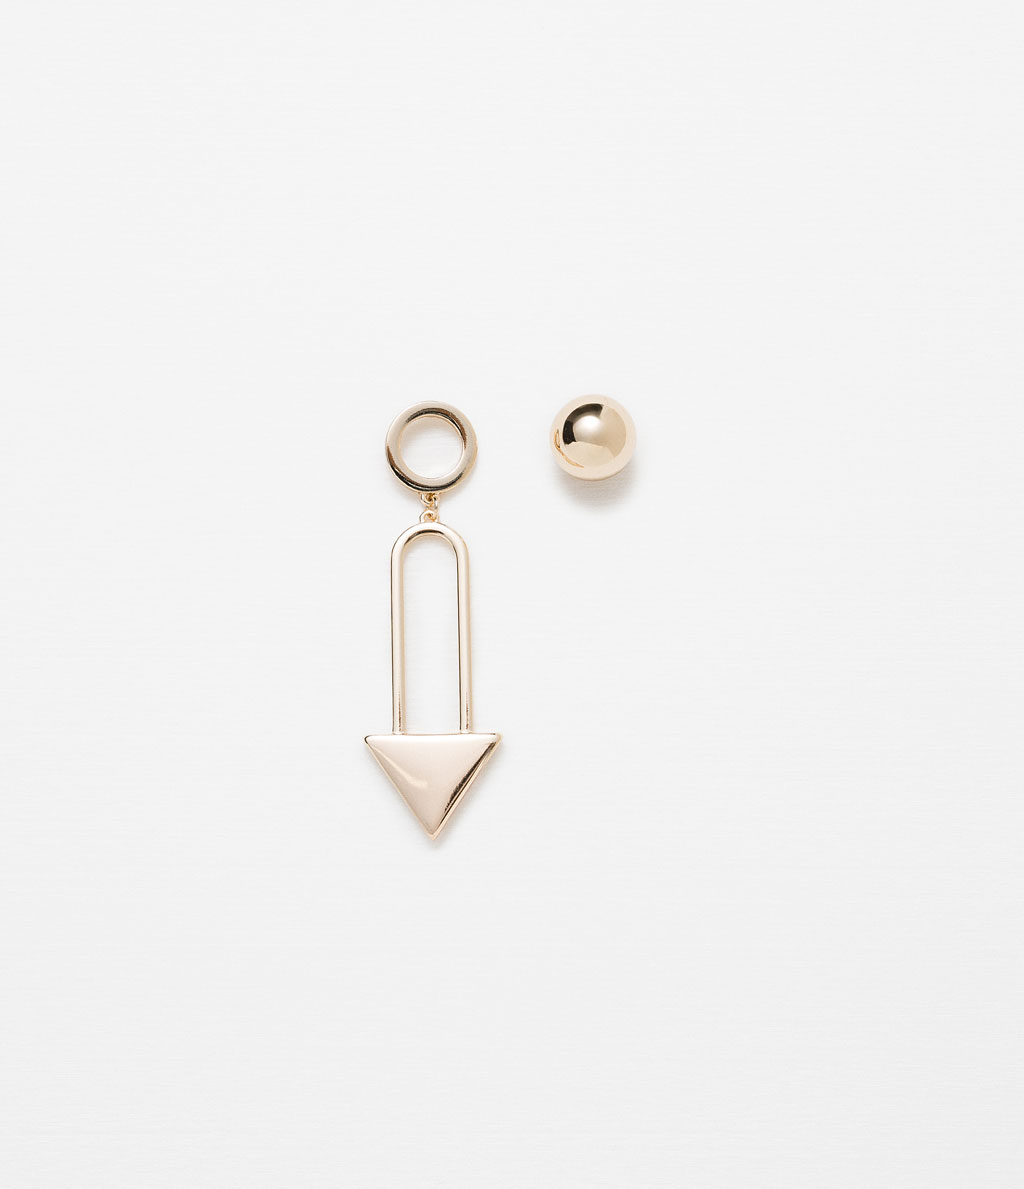 http://www.zara.com/ch/en/woman/accessories/jewellery/triangular-geometric-earrings-c499007p2777067.html